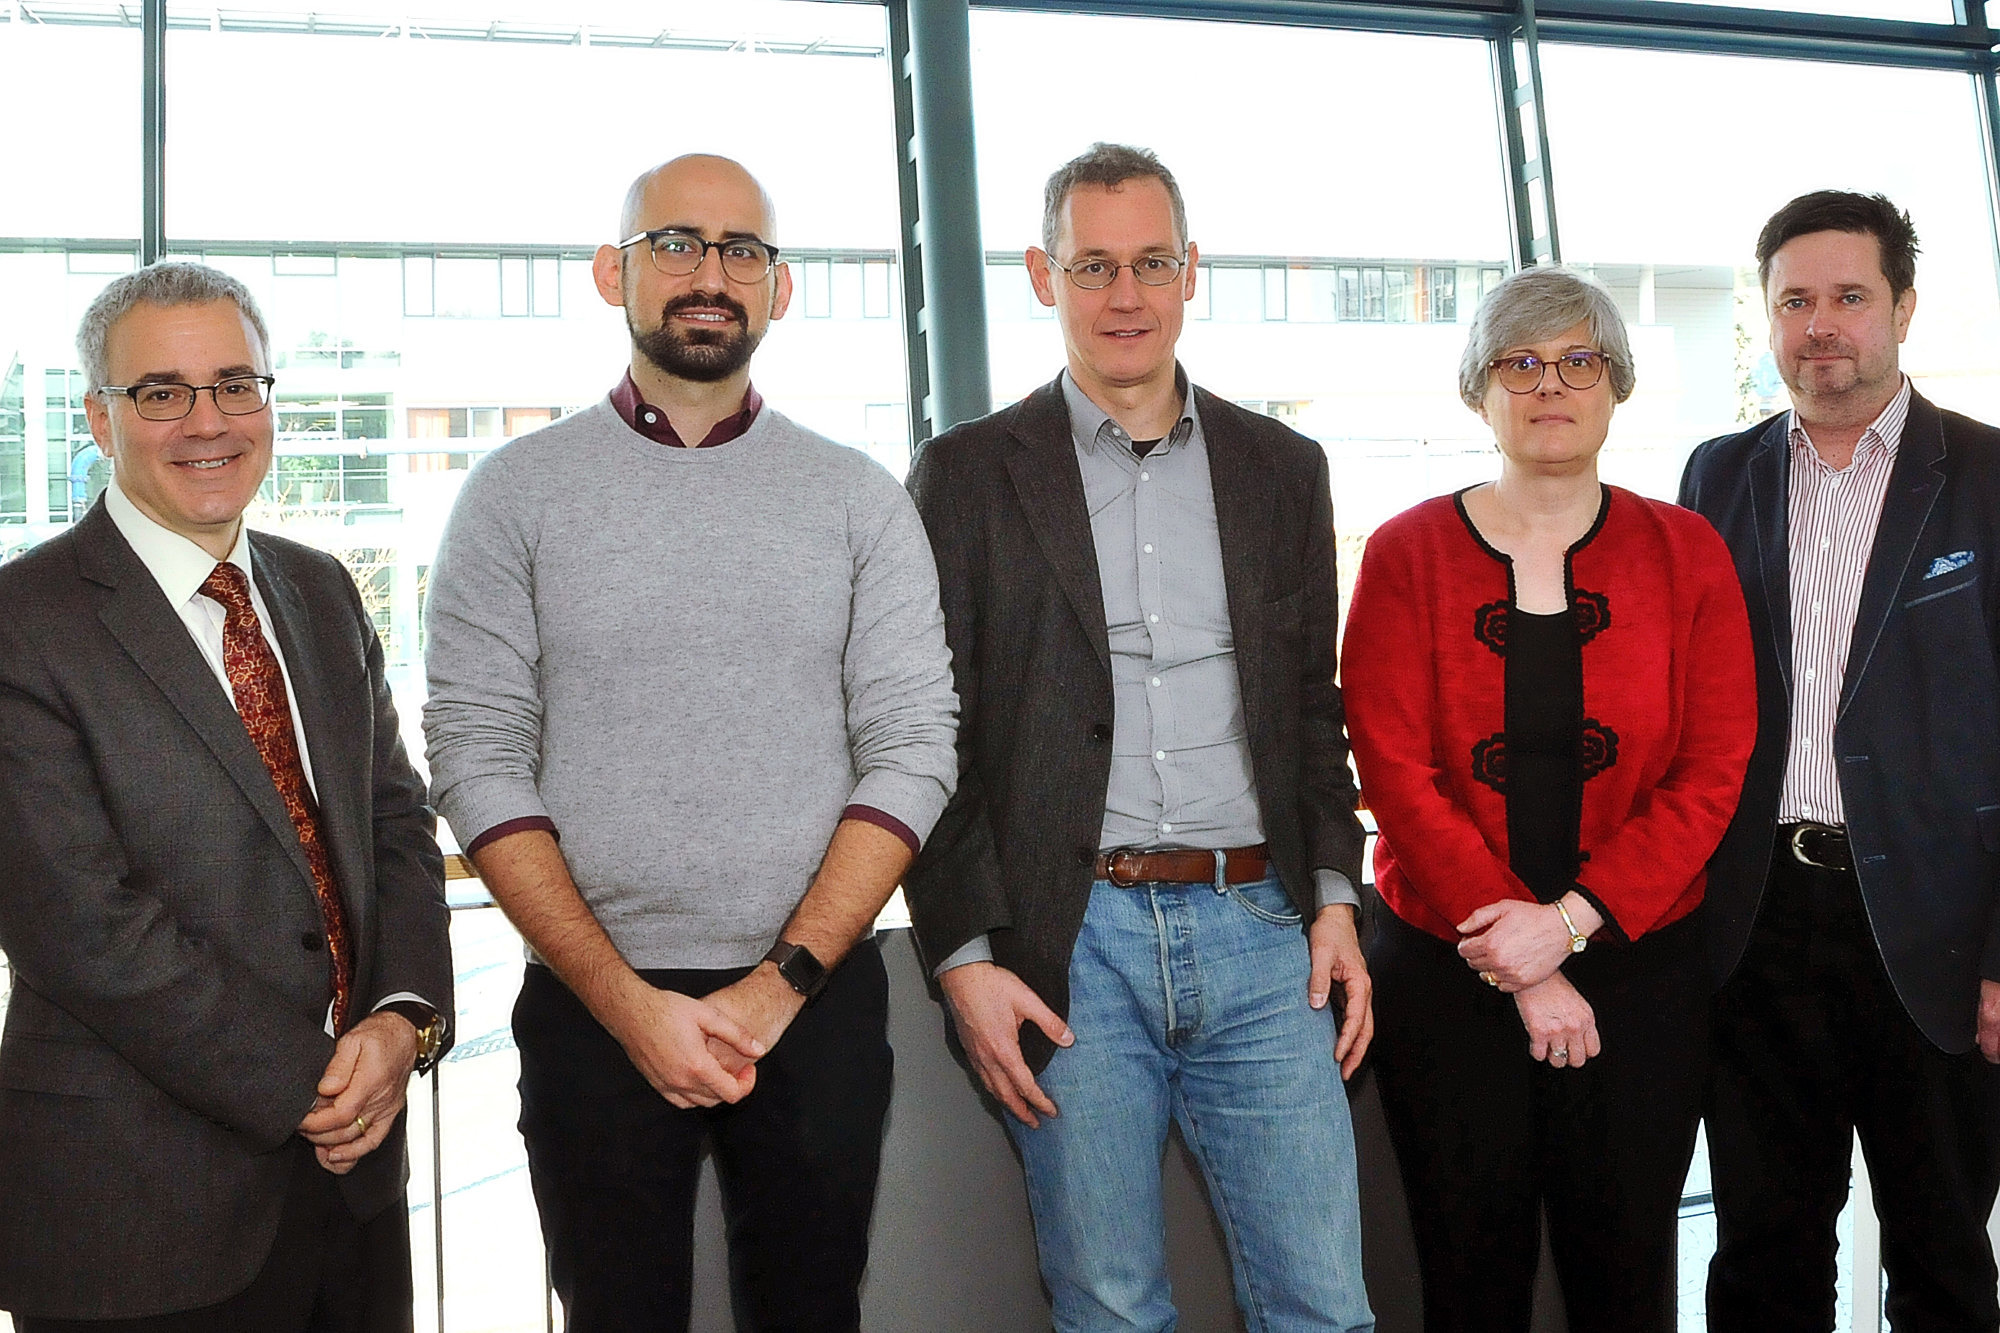 The scientific advisory board (Dr. G. Hripcsak, A. Zehir, PhD, Prof. Dr. S. Schulz, L. McShane, PhD, Dr. K.-U. Heitmann) (Photo: L. Laufer)